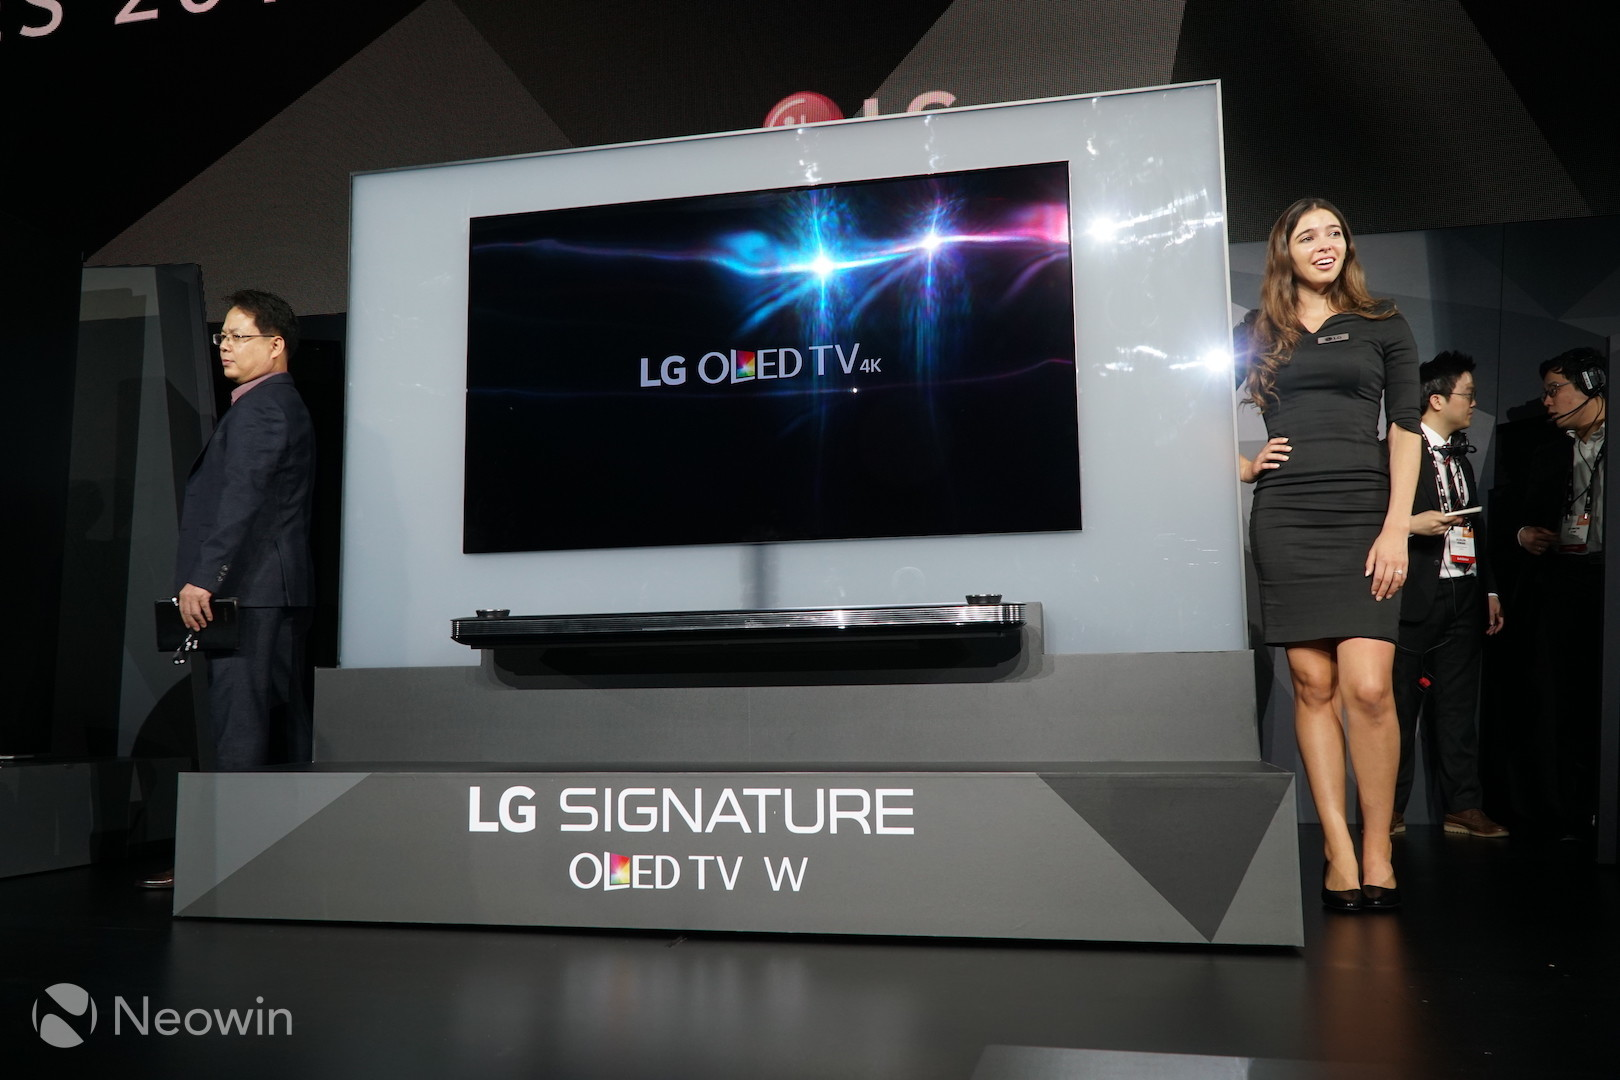 90836a636 LG delivers Super UHD TV lineup featuring Nano Cell technology - Neowin